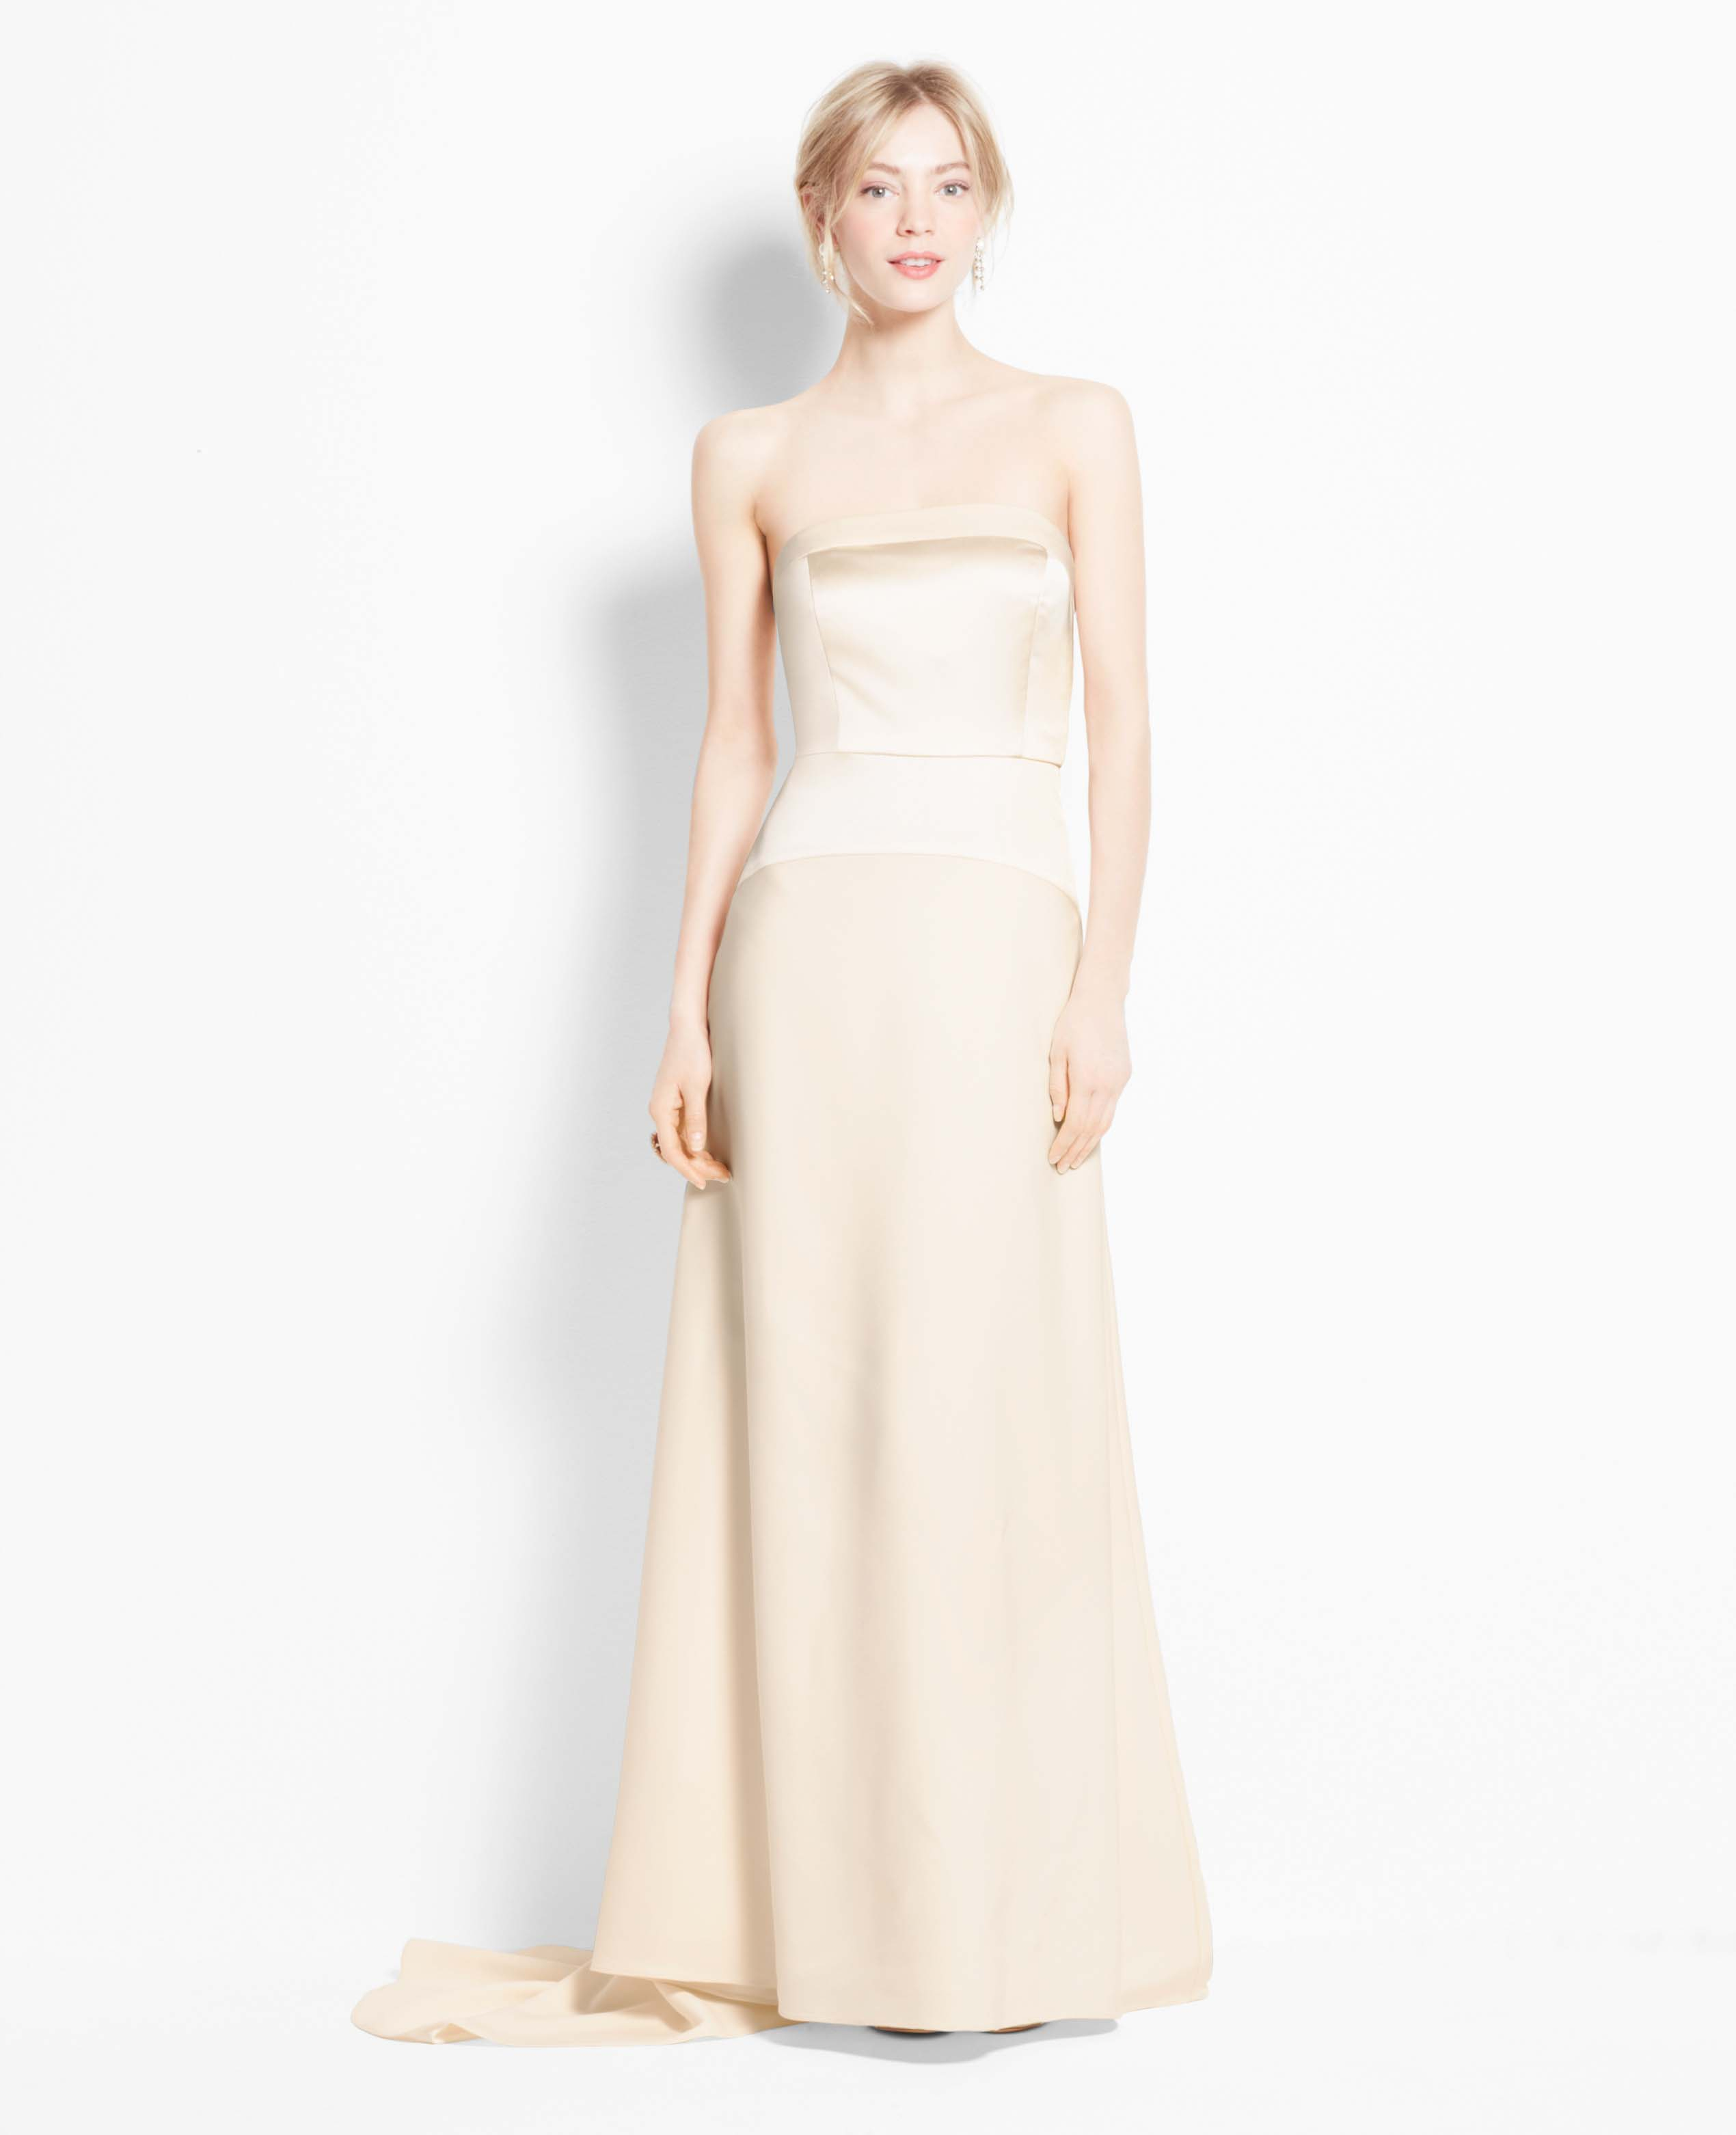 Ann taylor satin bodice strapless wedding dress in beige for Wedding dresses ann taylor